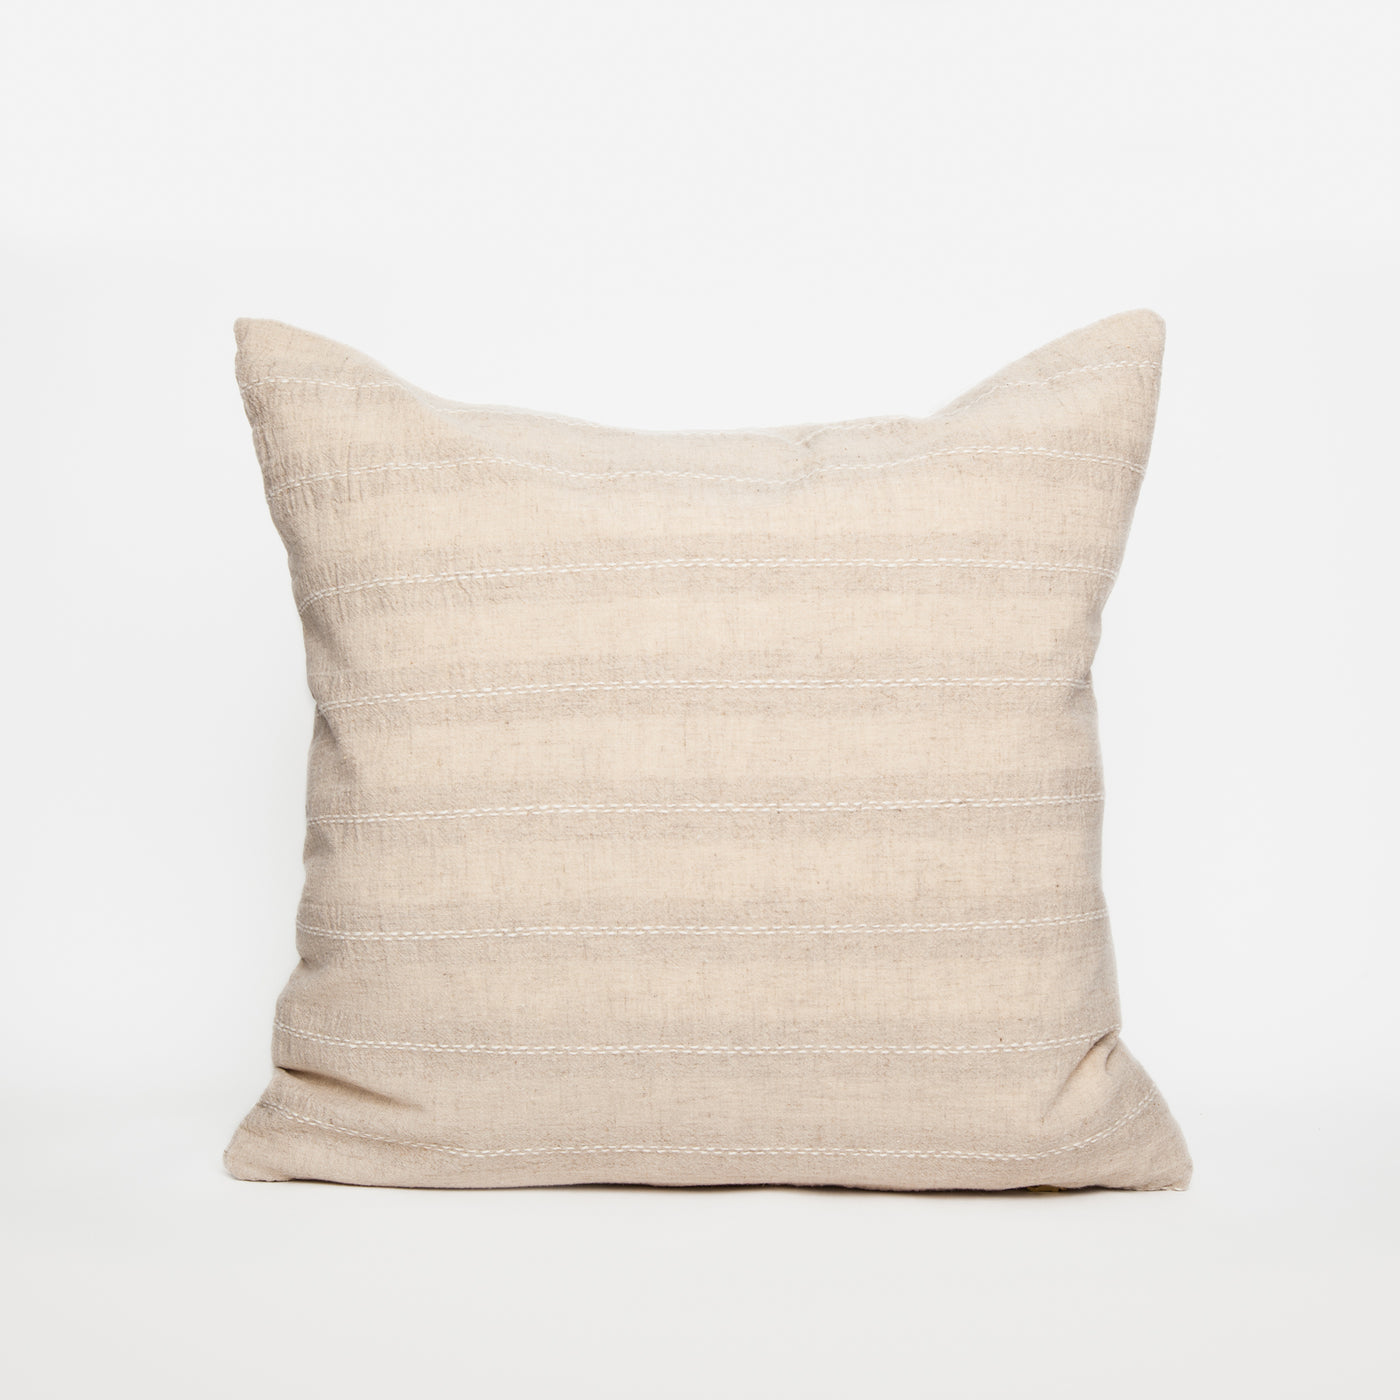 Hom & Co | Home decor pillow | coussin coton naturel chiangmai beige